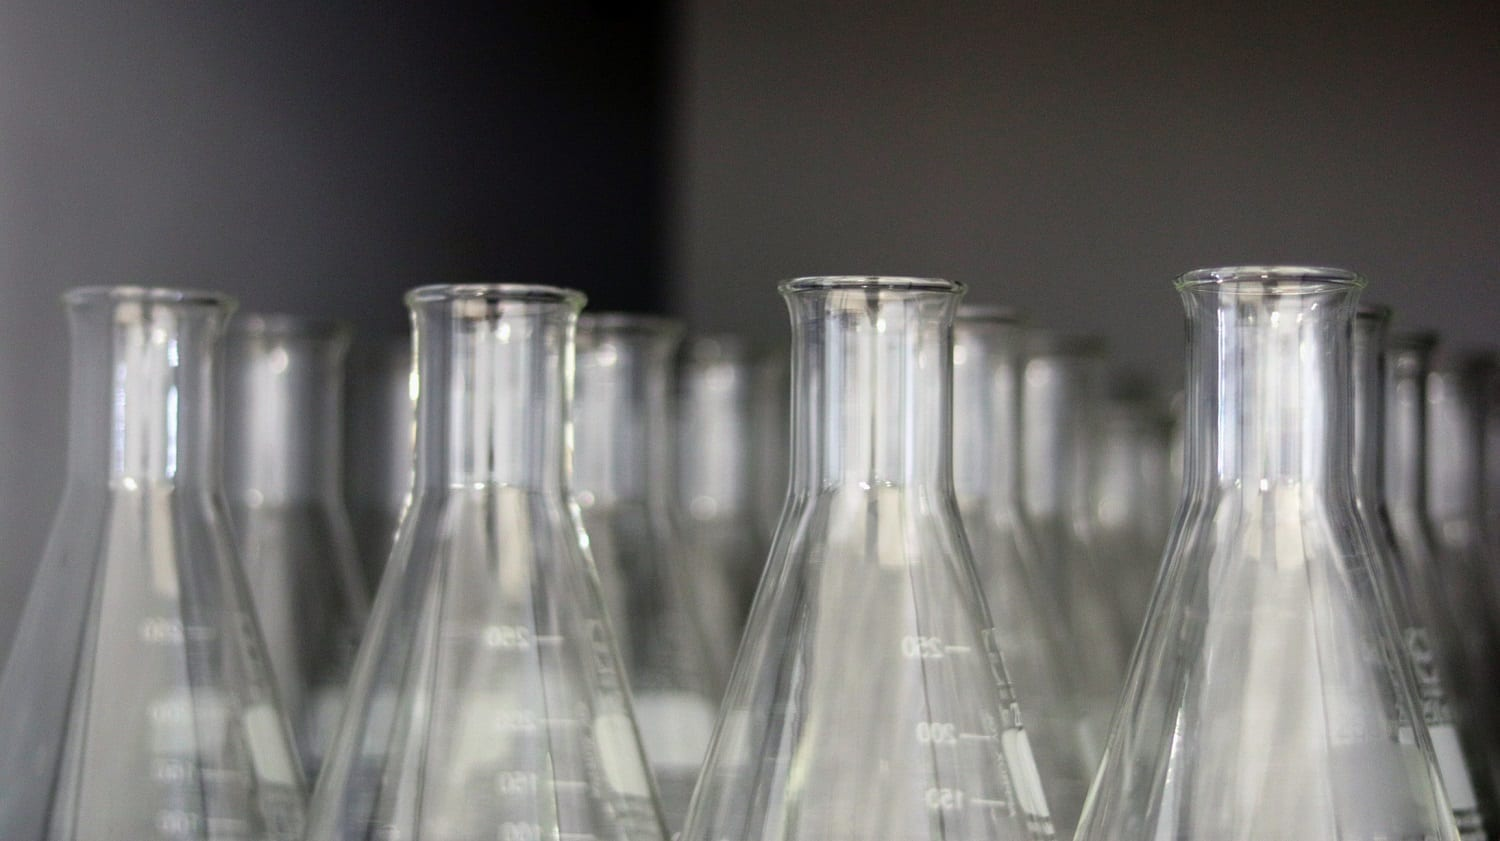 Erlenmeyer Flask tops in rows: ID 186306192 © Pakizo | Dreamstime.com